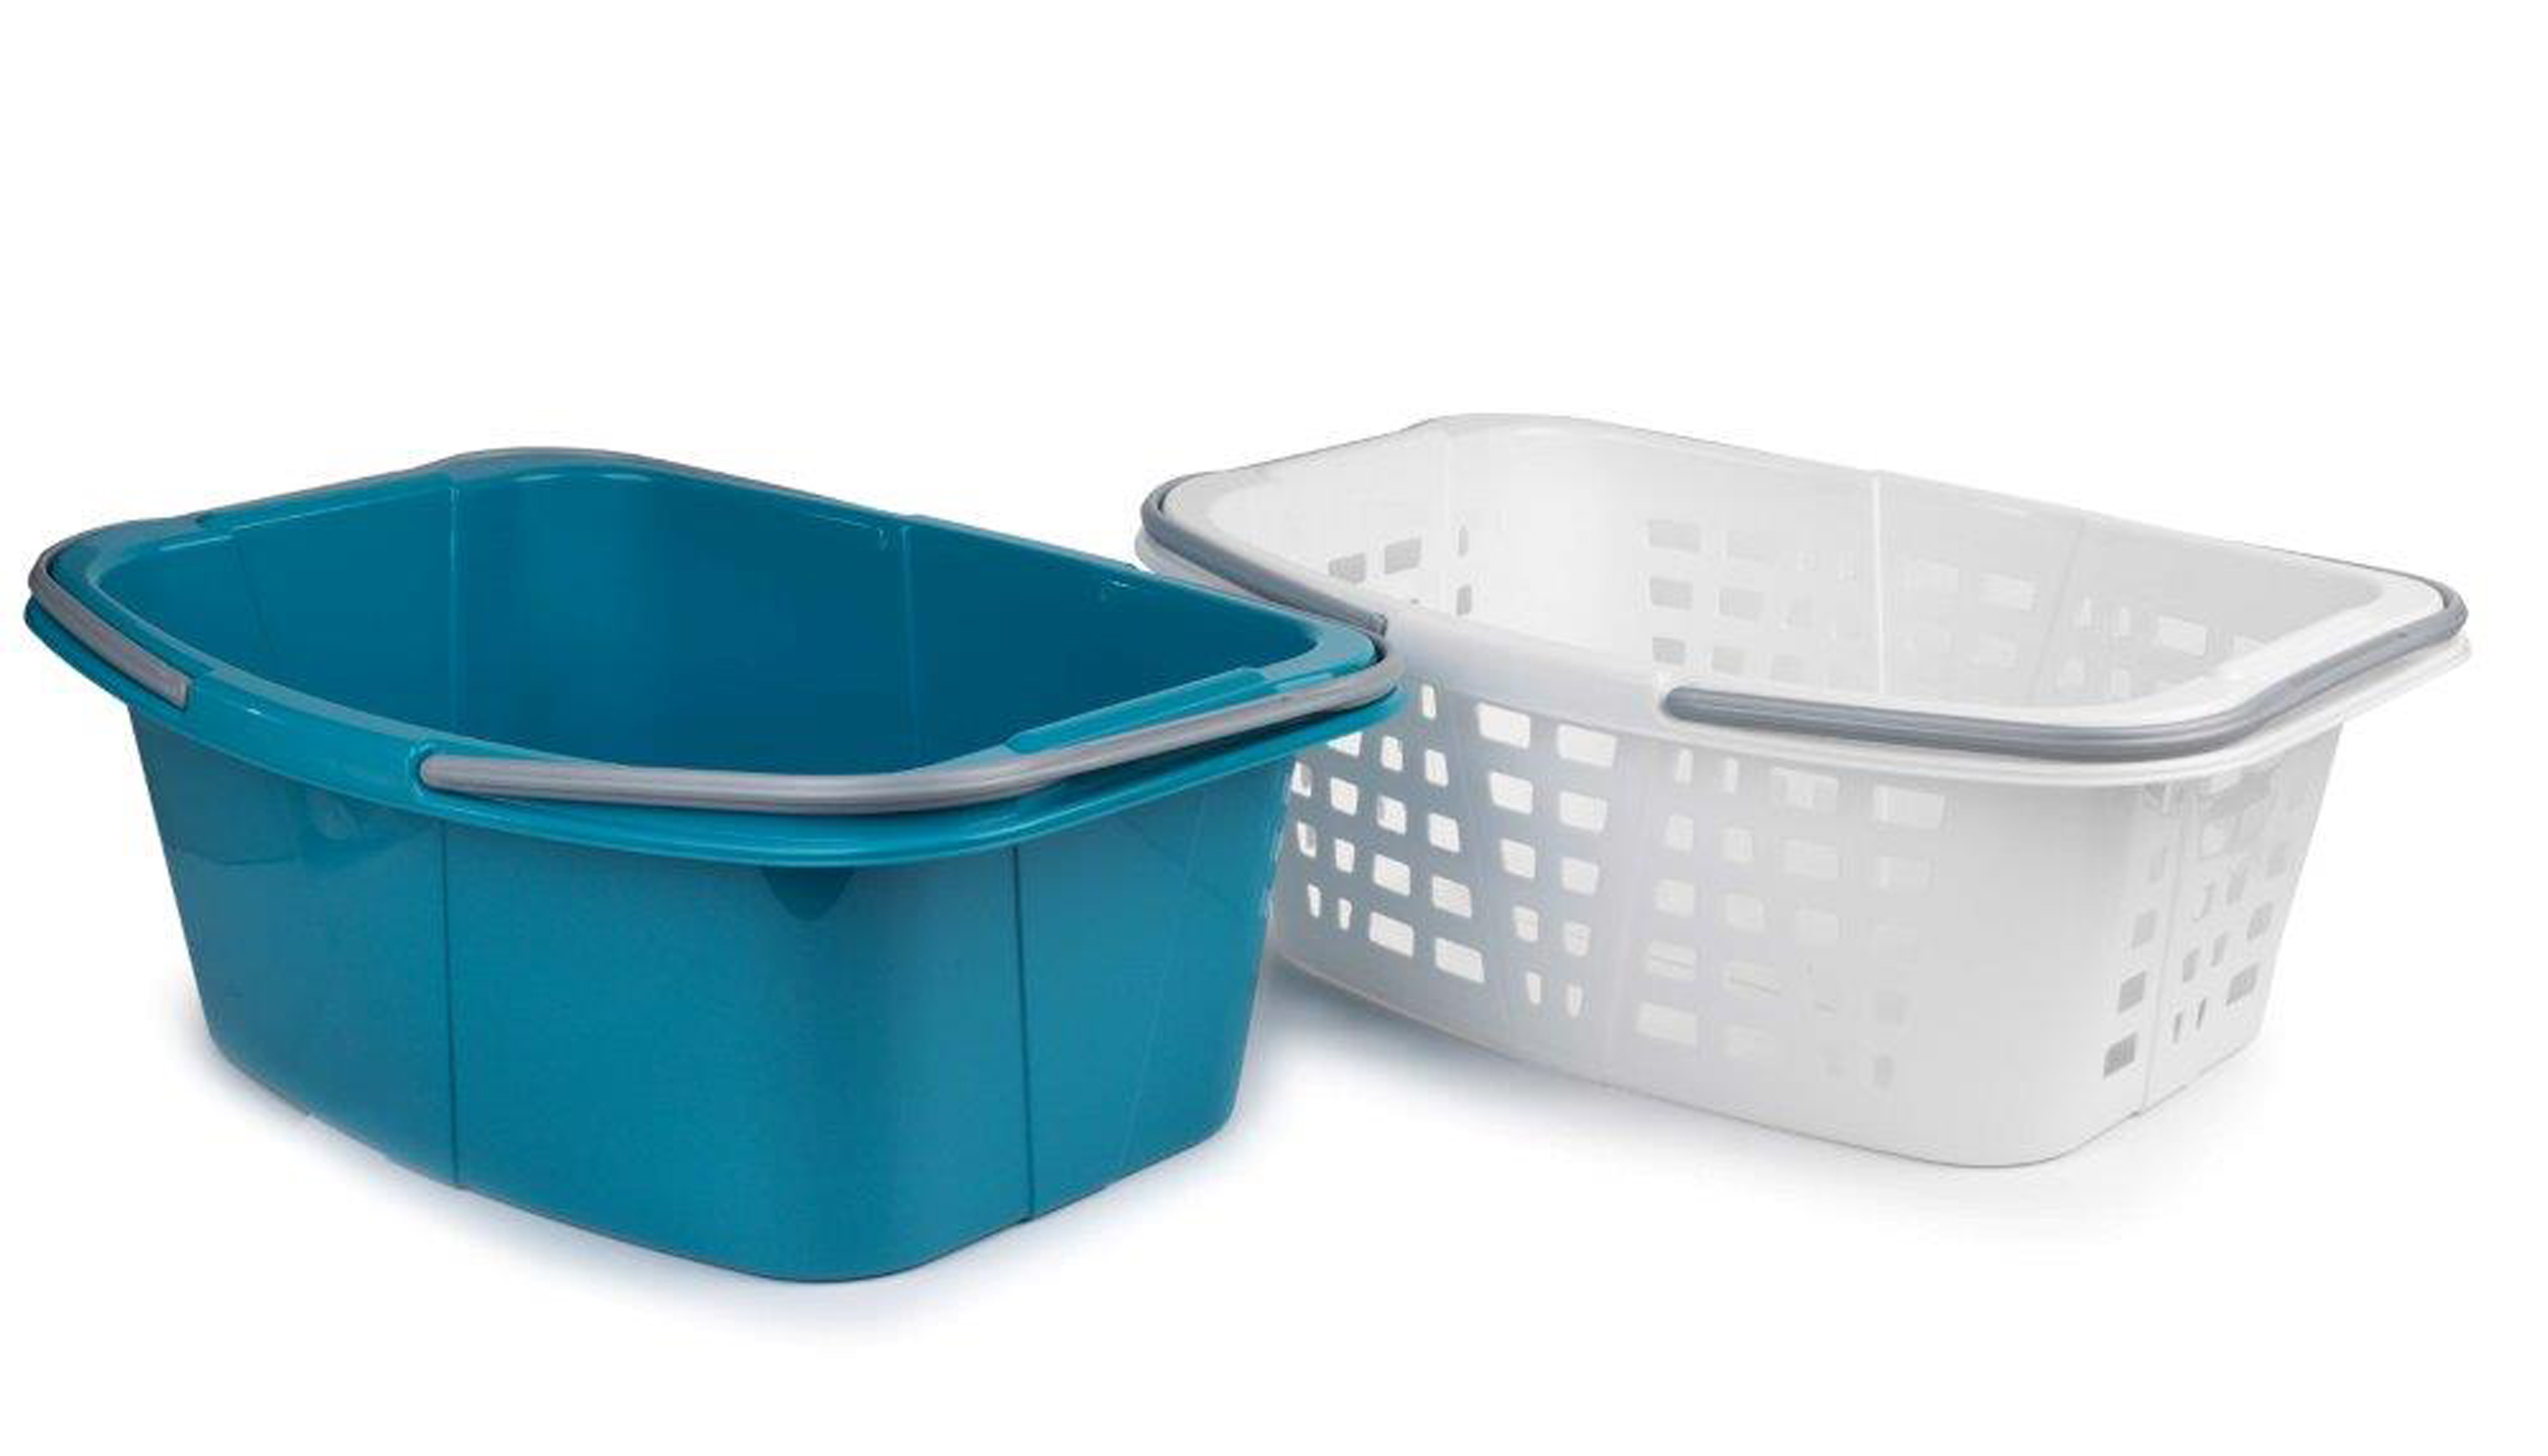 Beldray Turquoise Set Of 2 Laundry Baskets With Handles Thumbnail 1